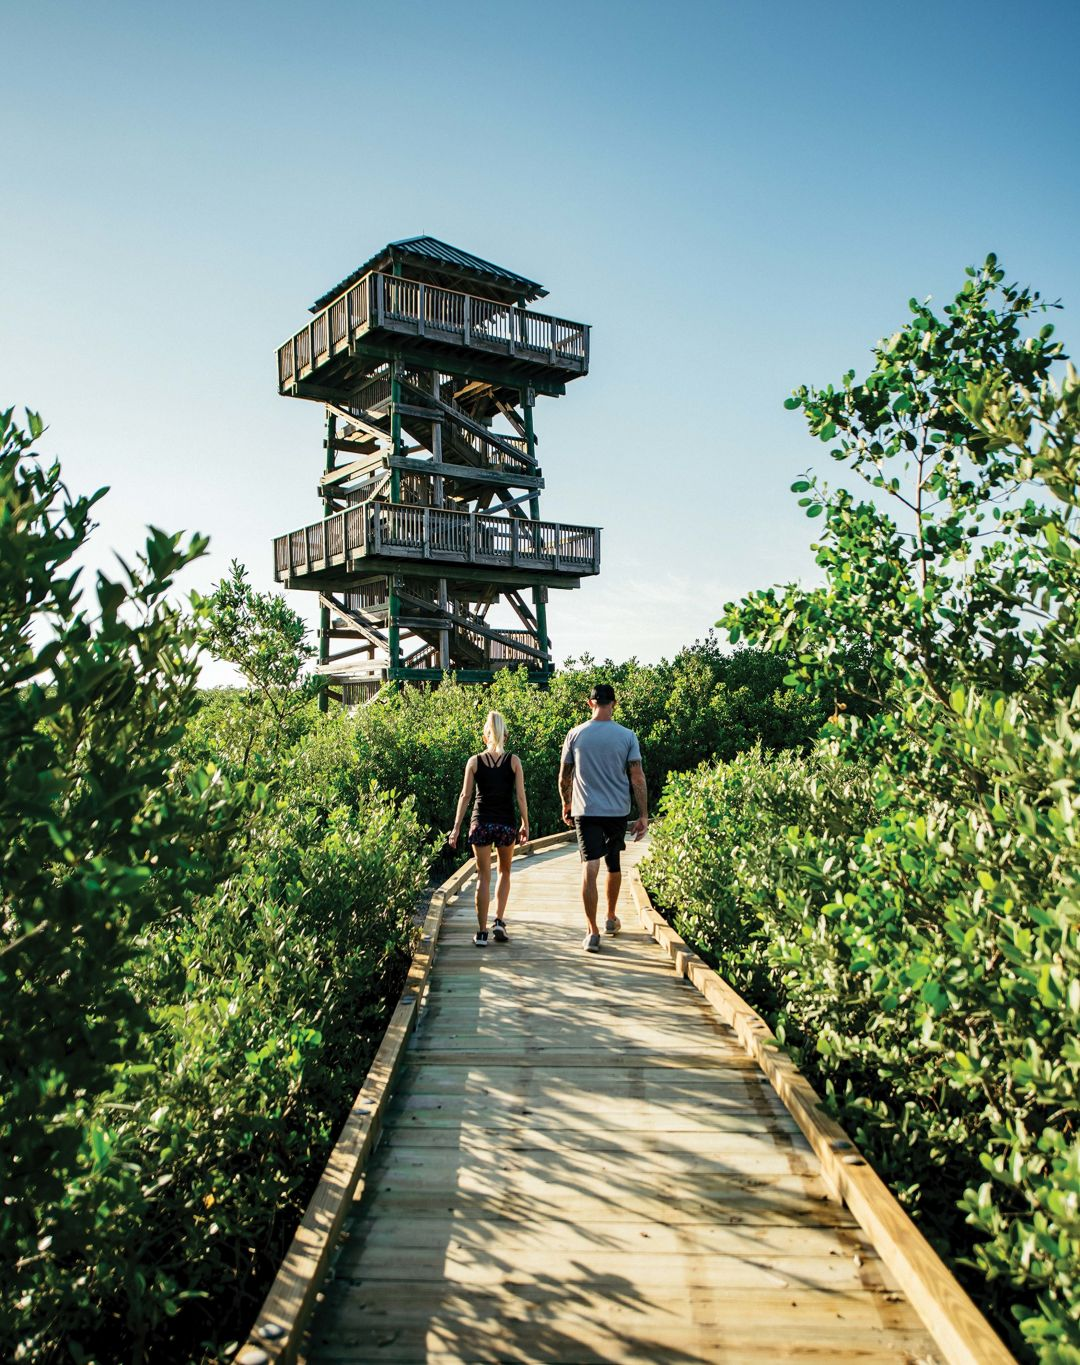 Visitors walking to the observation tower